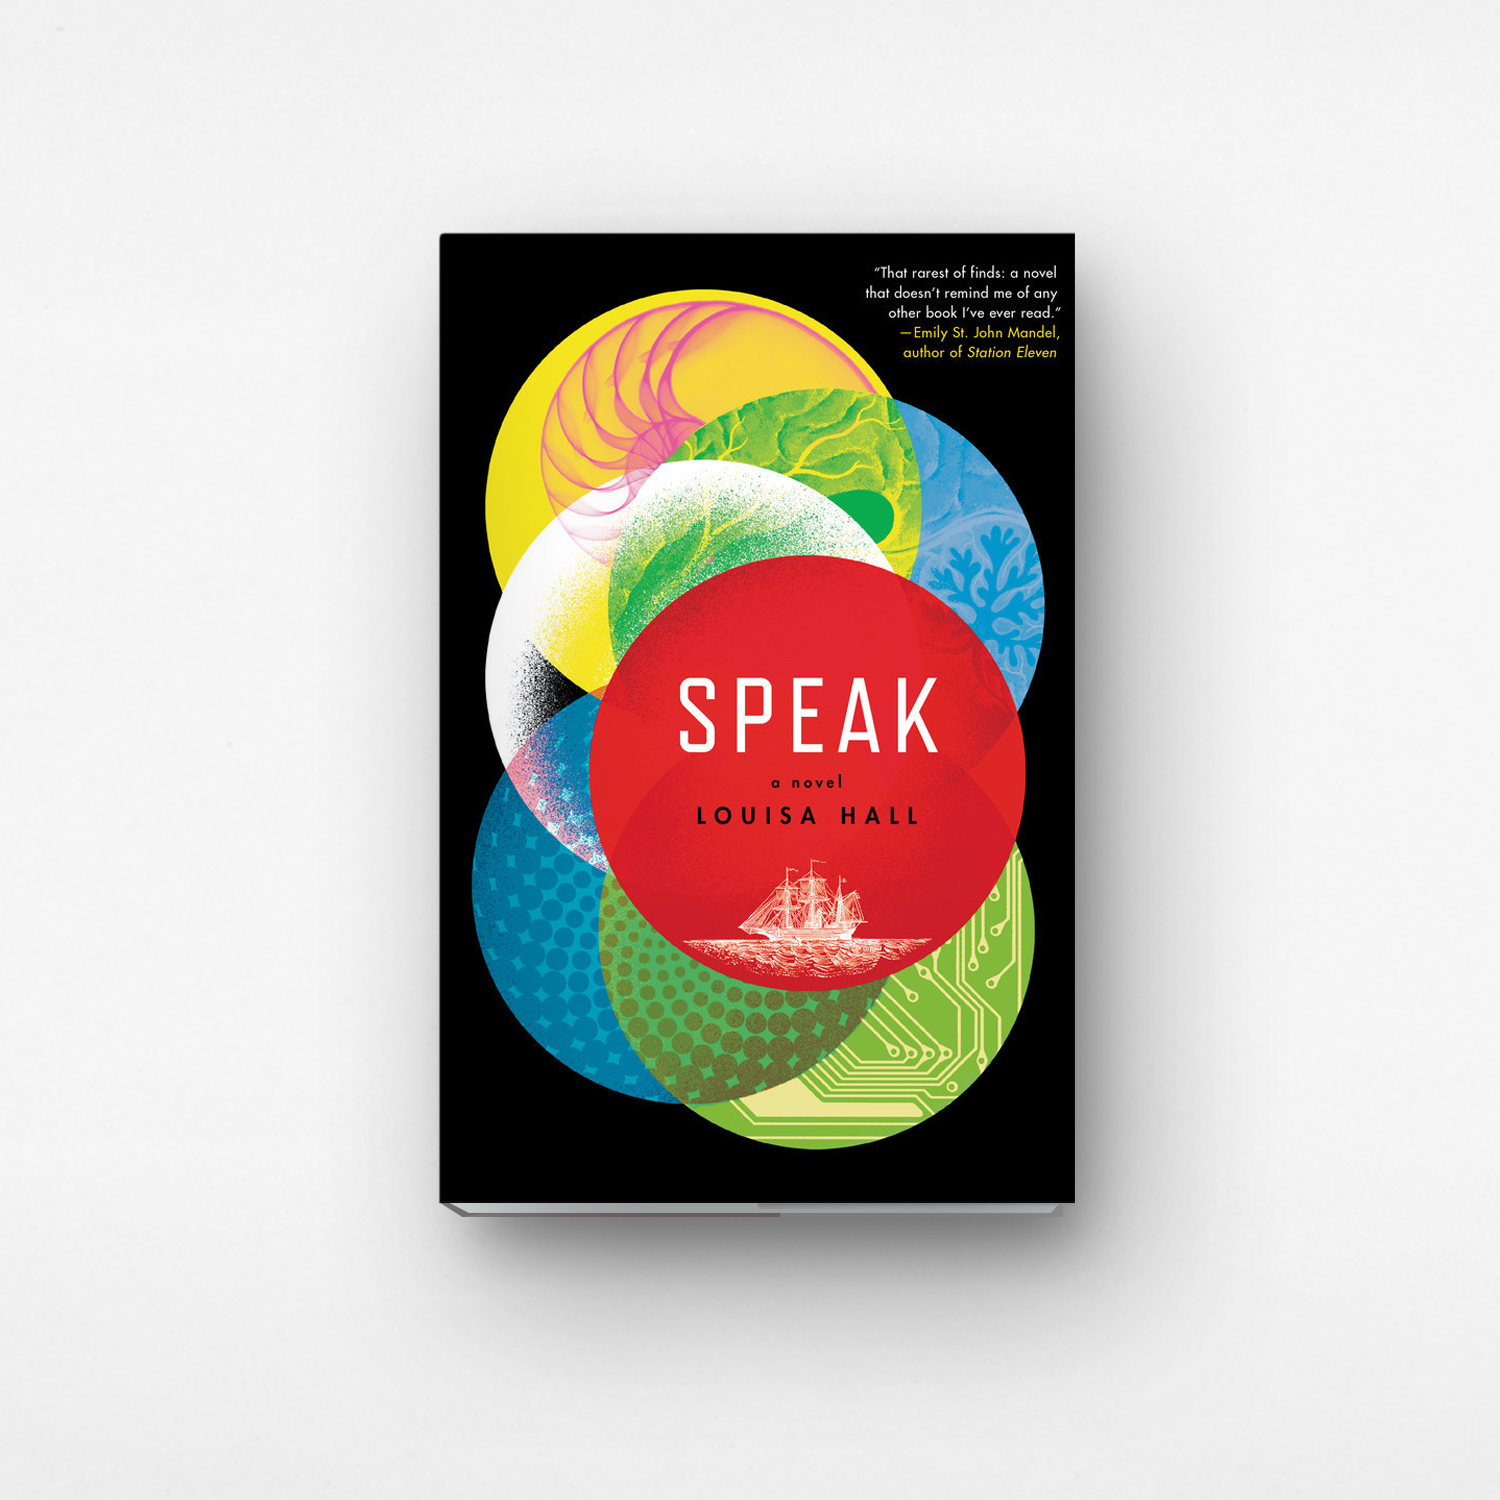 Speak designed by Jim Tierney